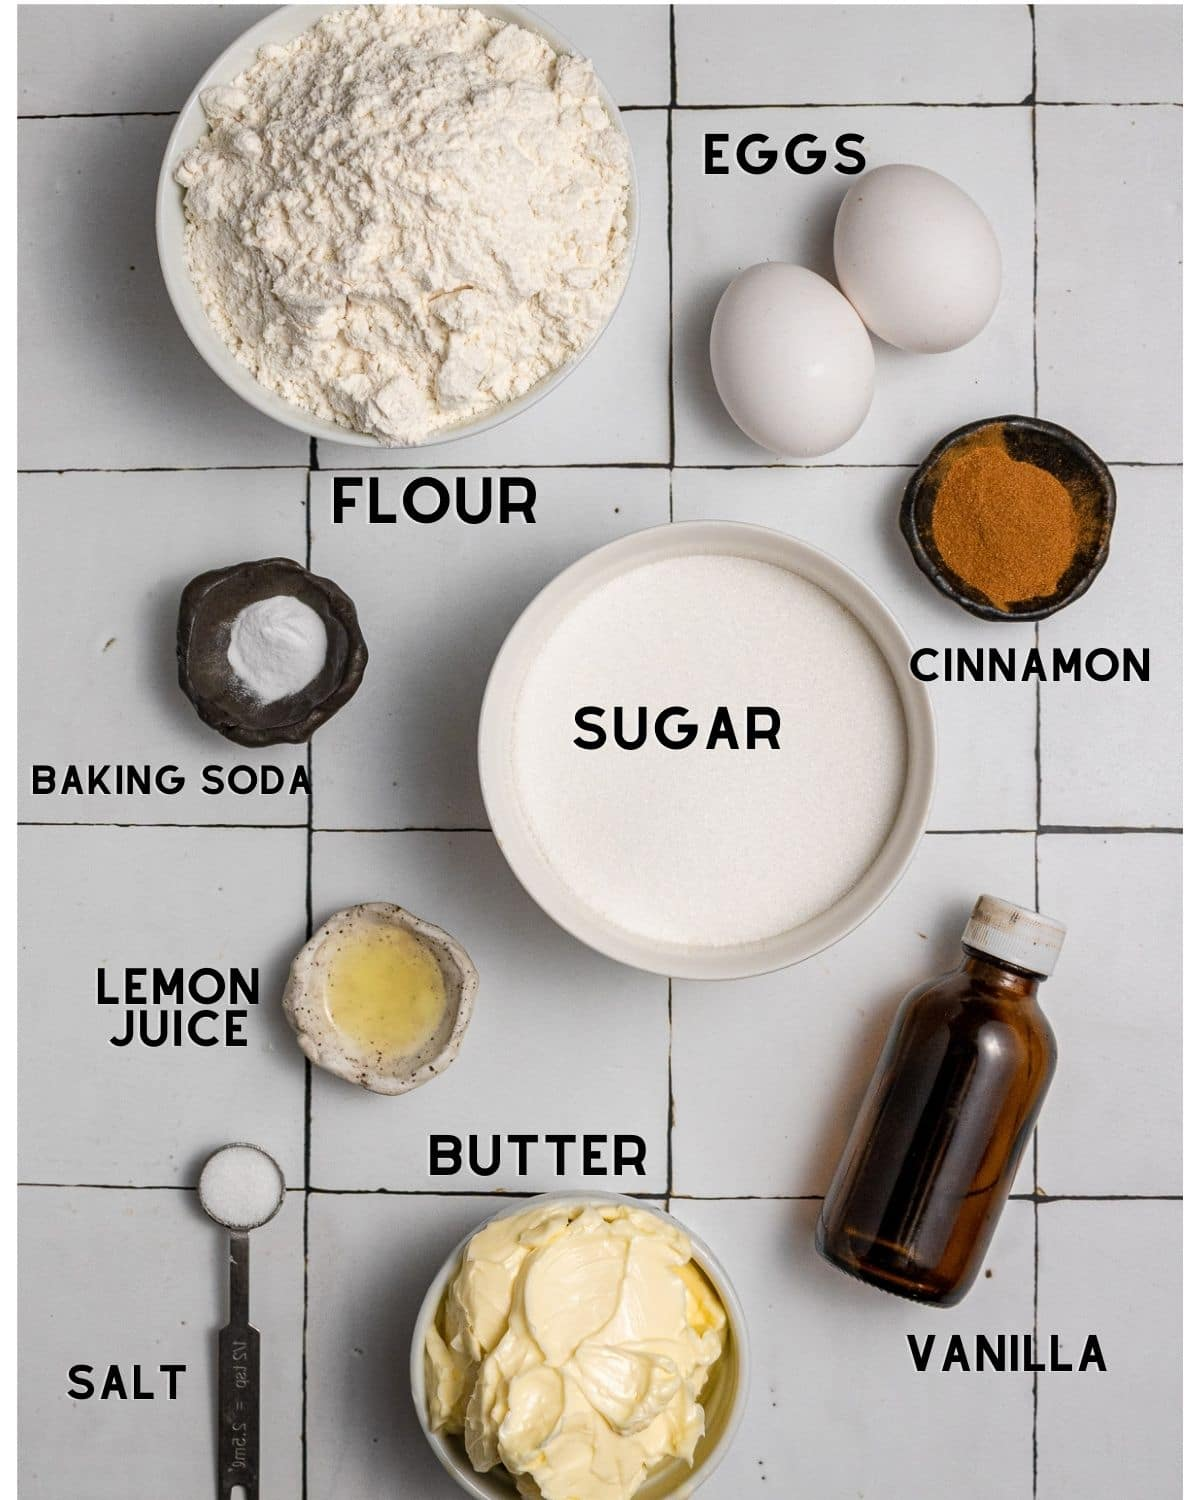 ingredients in bowls needed to make snickerdoodle cookies without cream of tartar